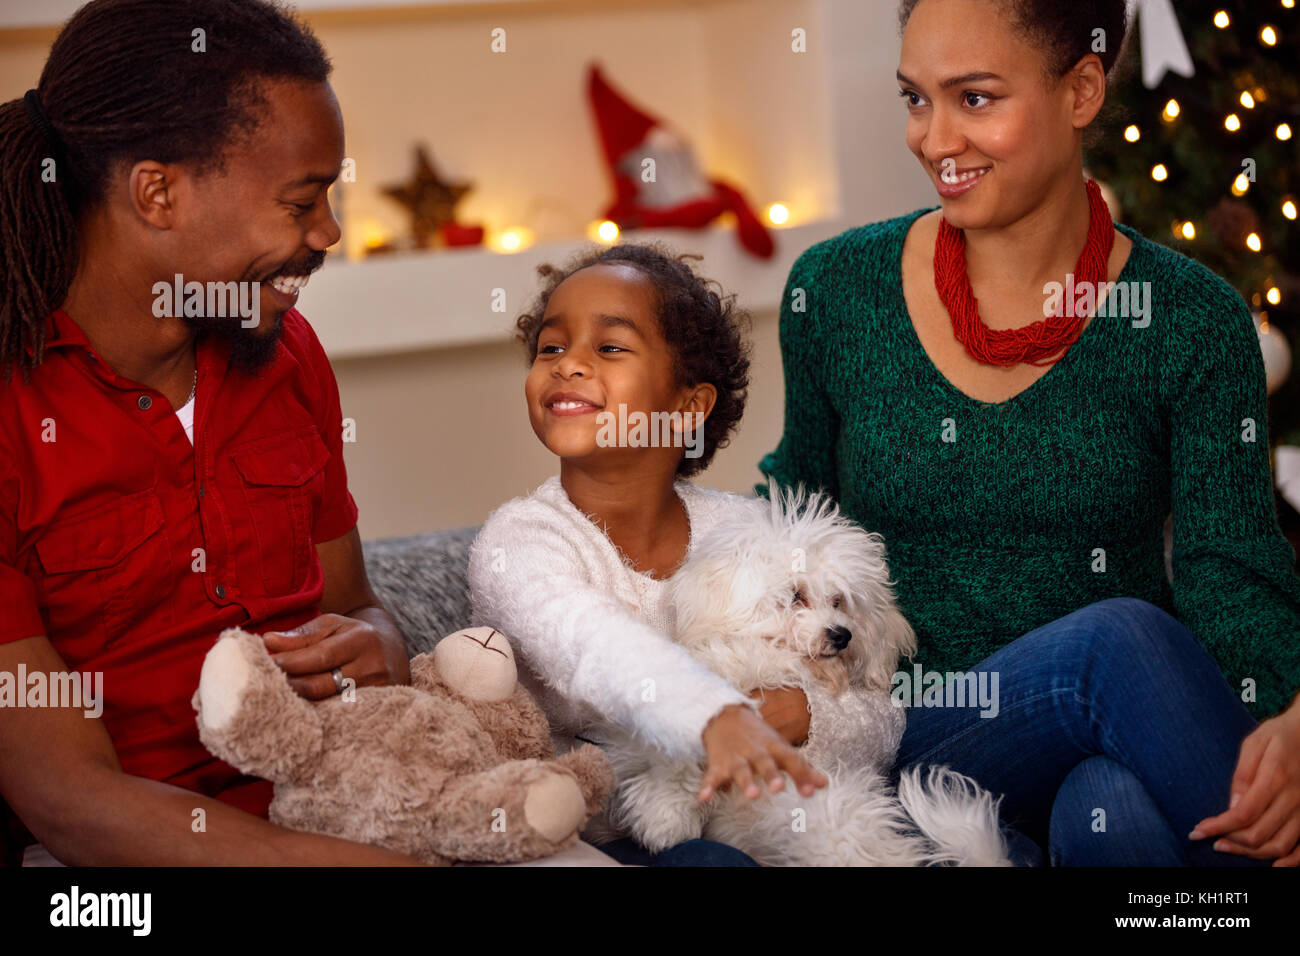 young smiling black family with presents at christmas stock image - Black People Christmas